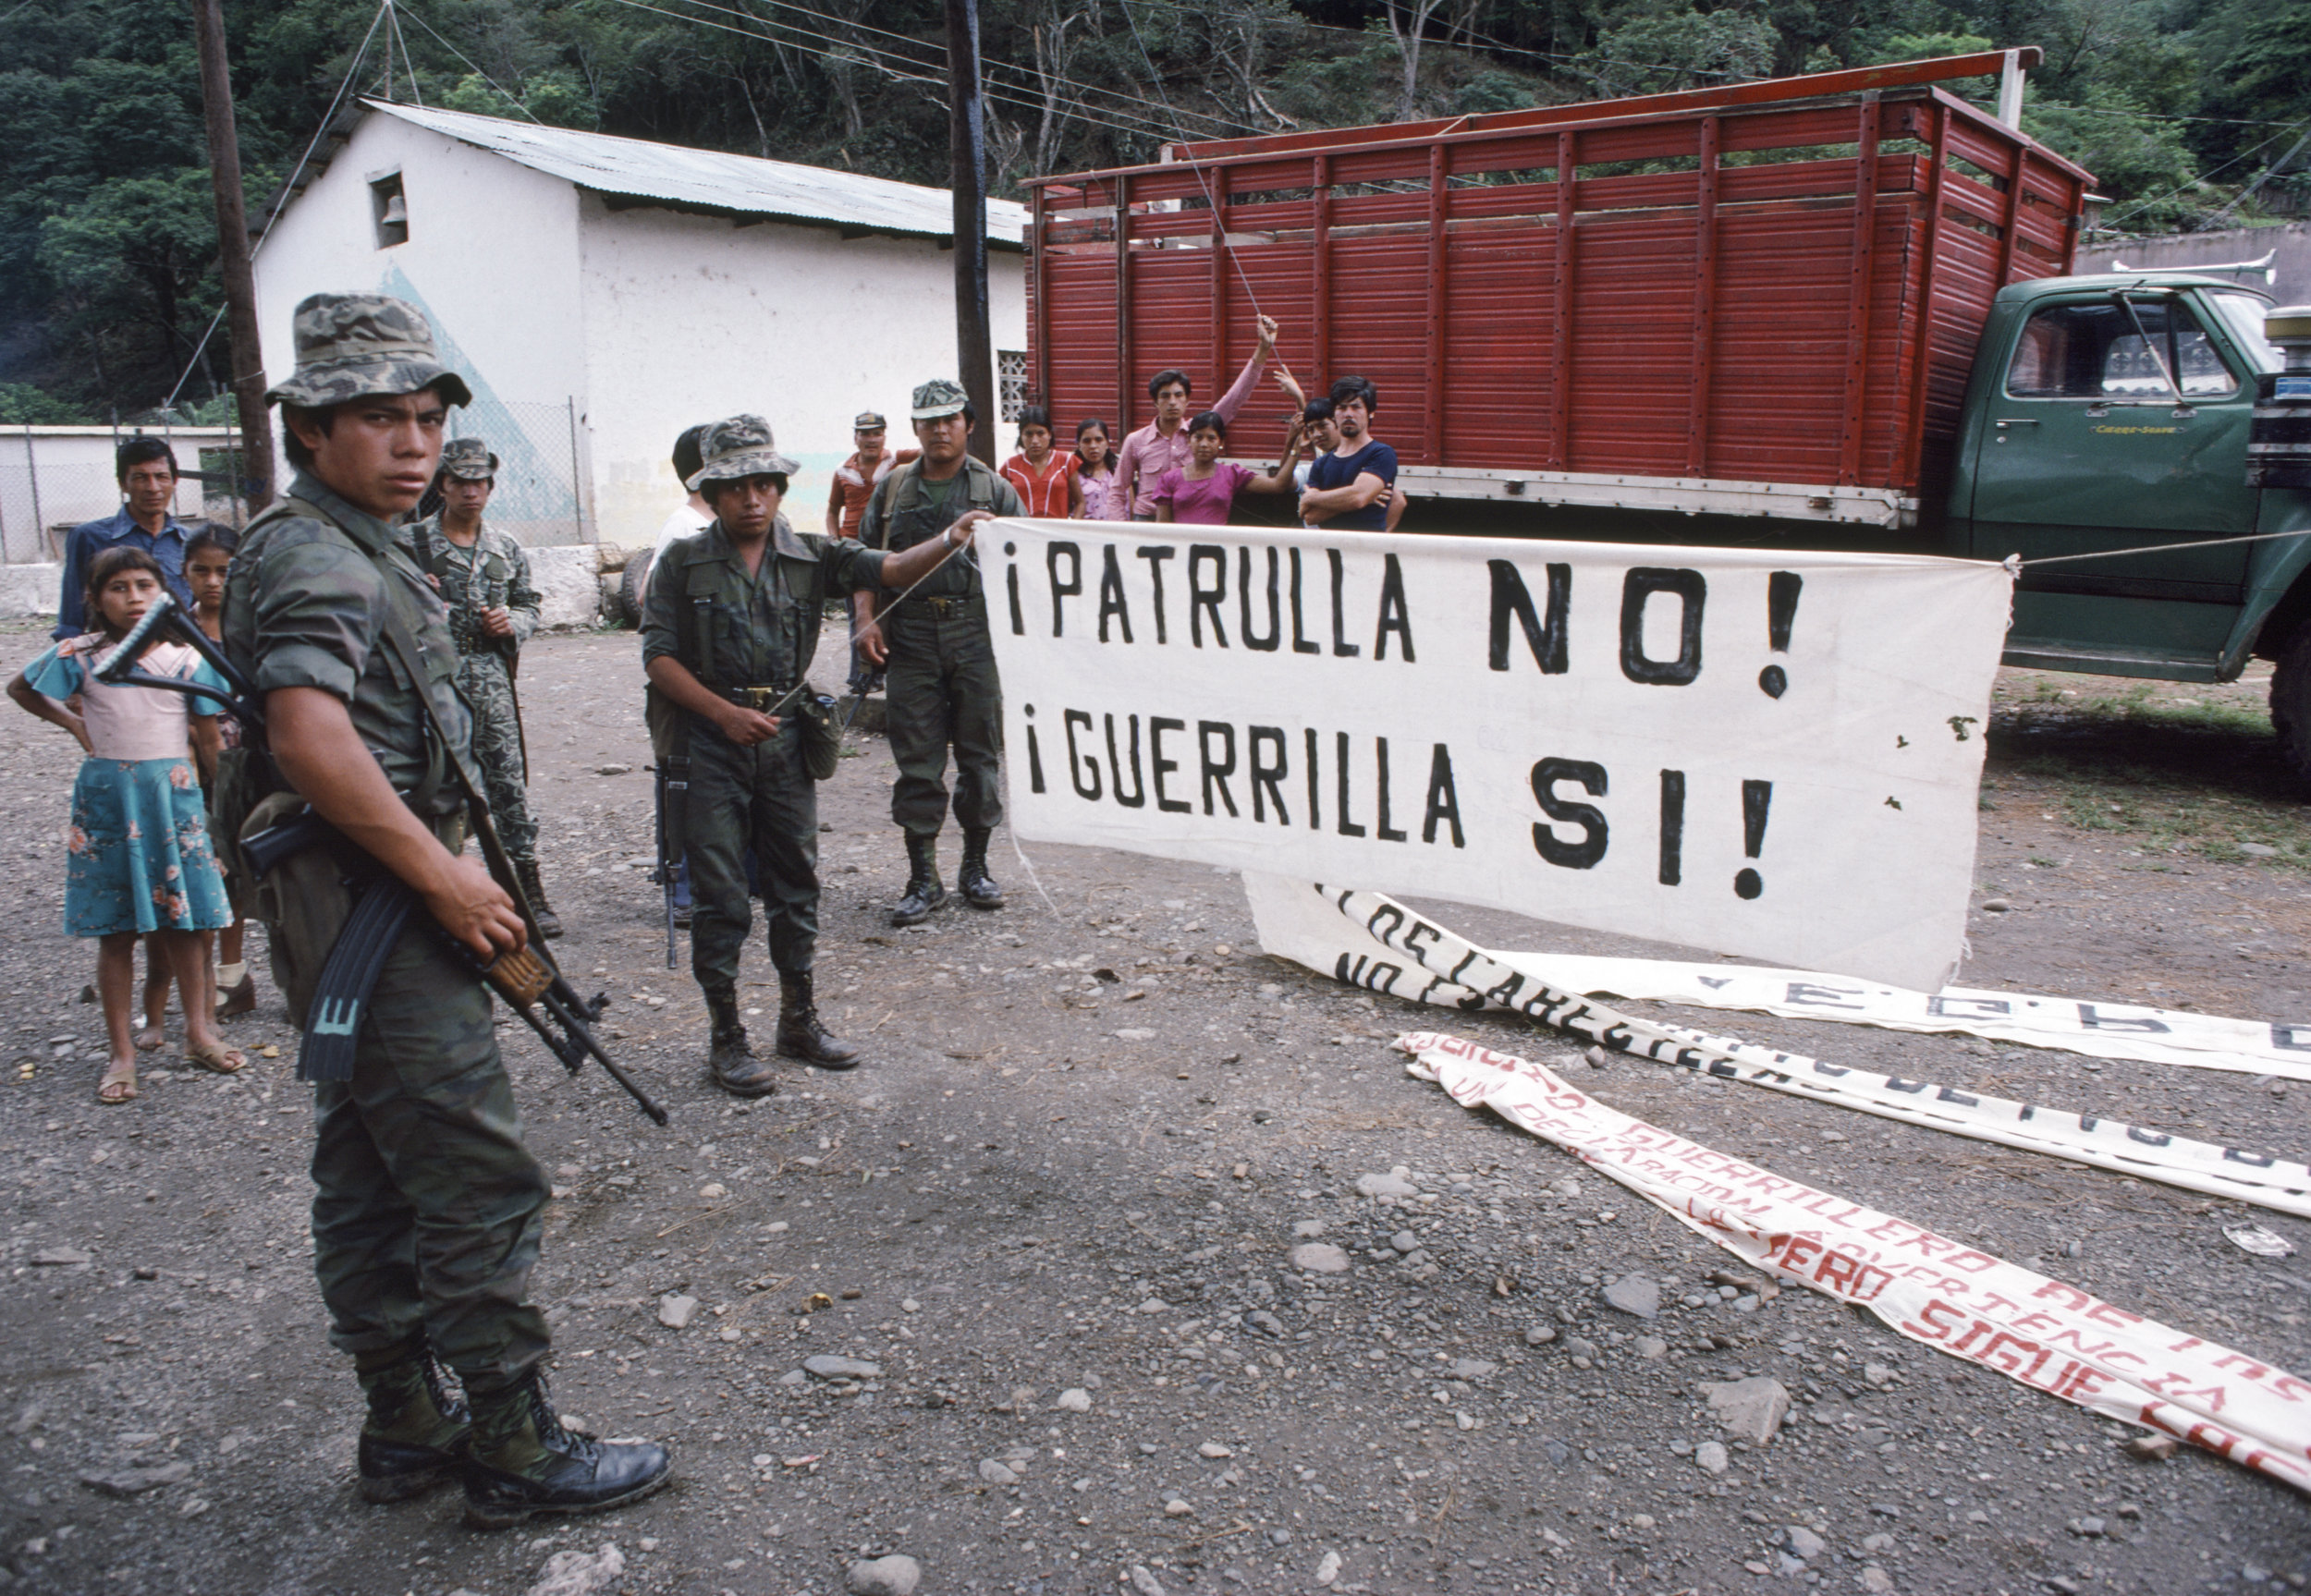 Local residents watch as Guatemalan army soldiers show captured banners made by the militant guerrilla group Guerrilla Army of the Poor, EGP, in Huehuetenango, Guatemala, October 1, 1982. The EGP emerged in 1967 and established itself in the highlands where civilian support for their cause was high; among their demands were land reform, access to healthcare, and human rights, particularly for the Maya population of the country.